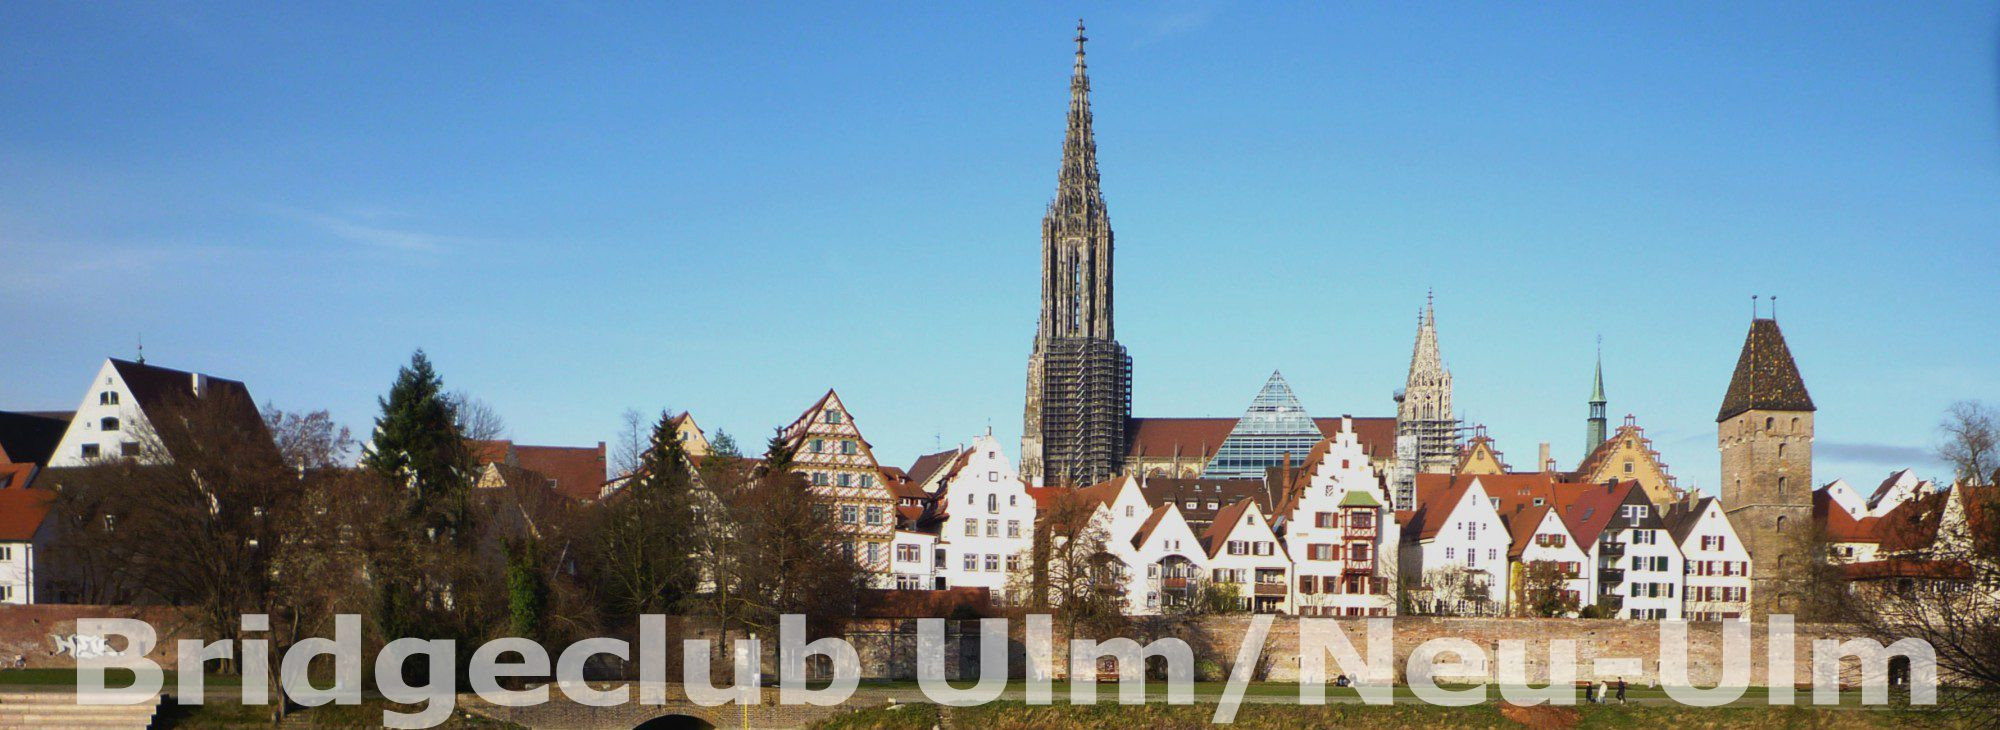 Bridge-Club Ulm/Neu-Ulm e.V